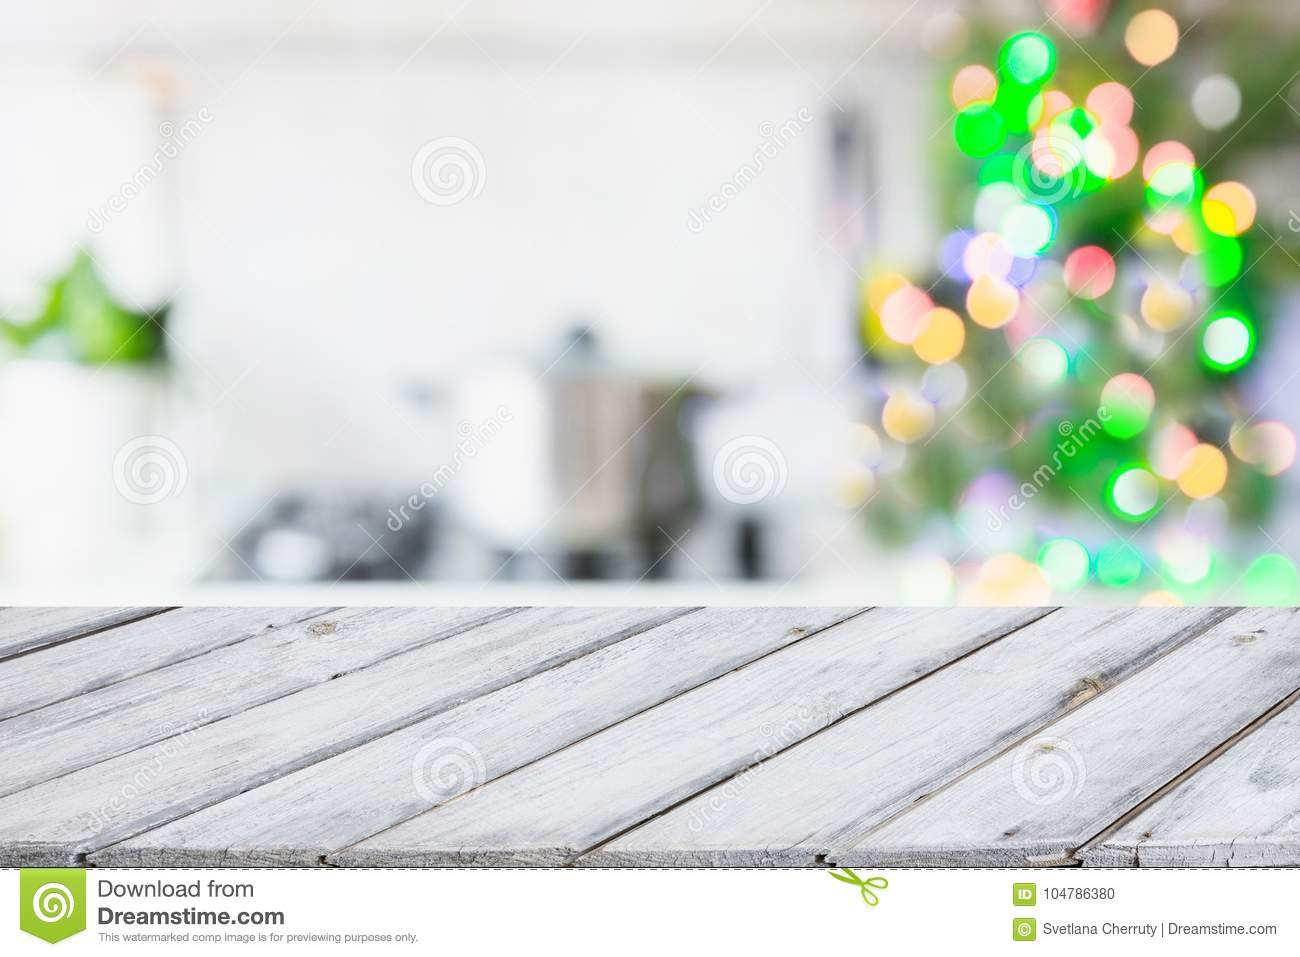 Christmas table background with christmas tree in kitchen out of focus. Background for display your products.